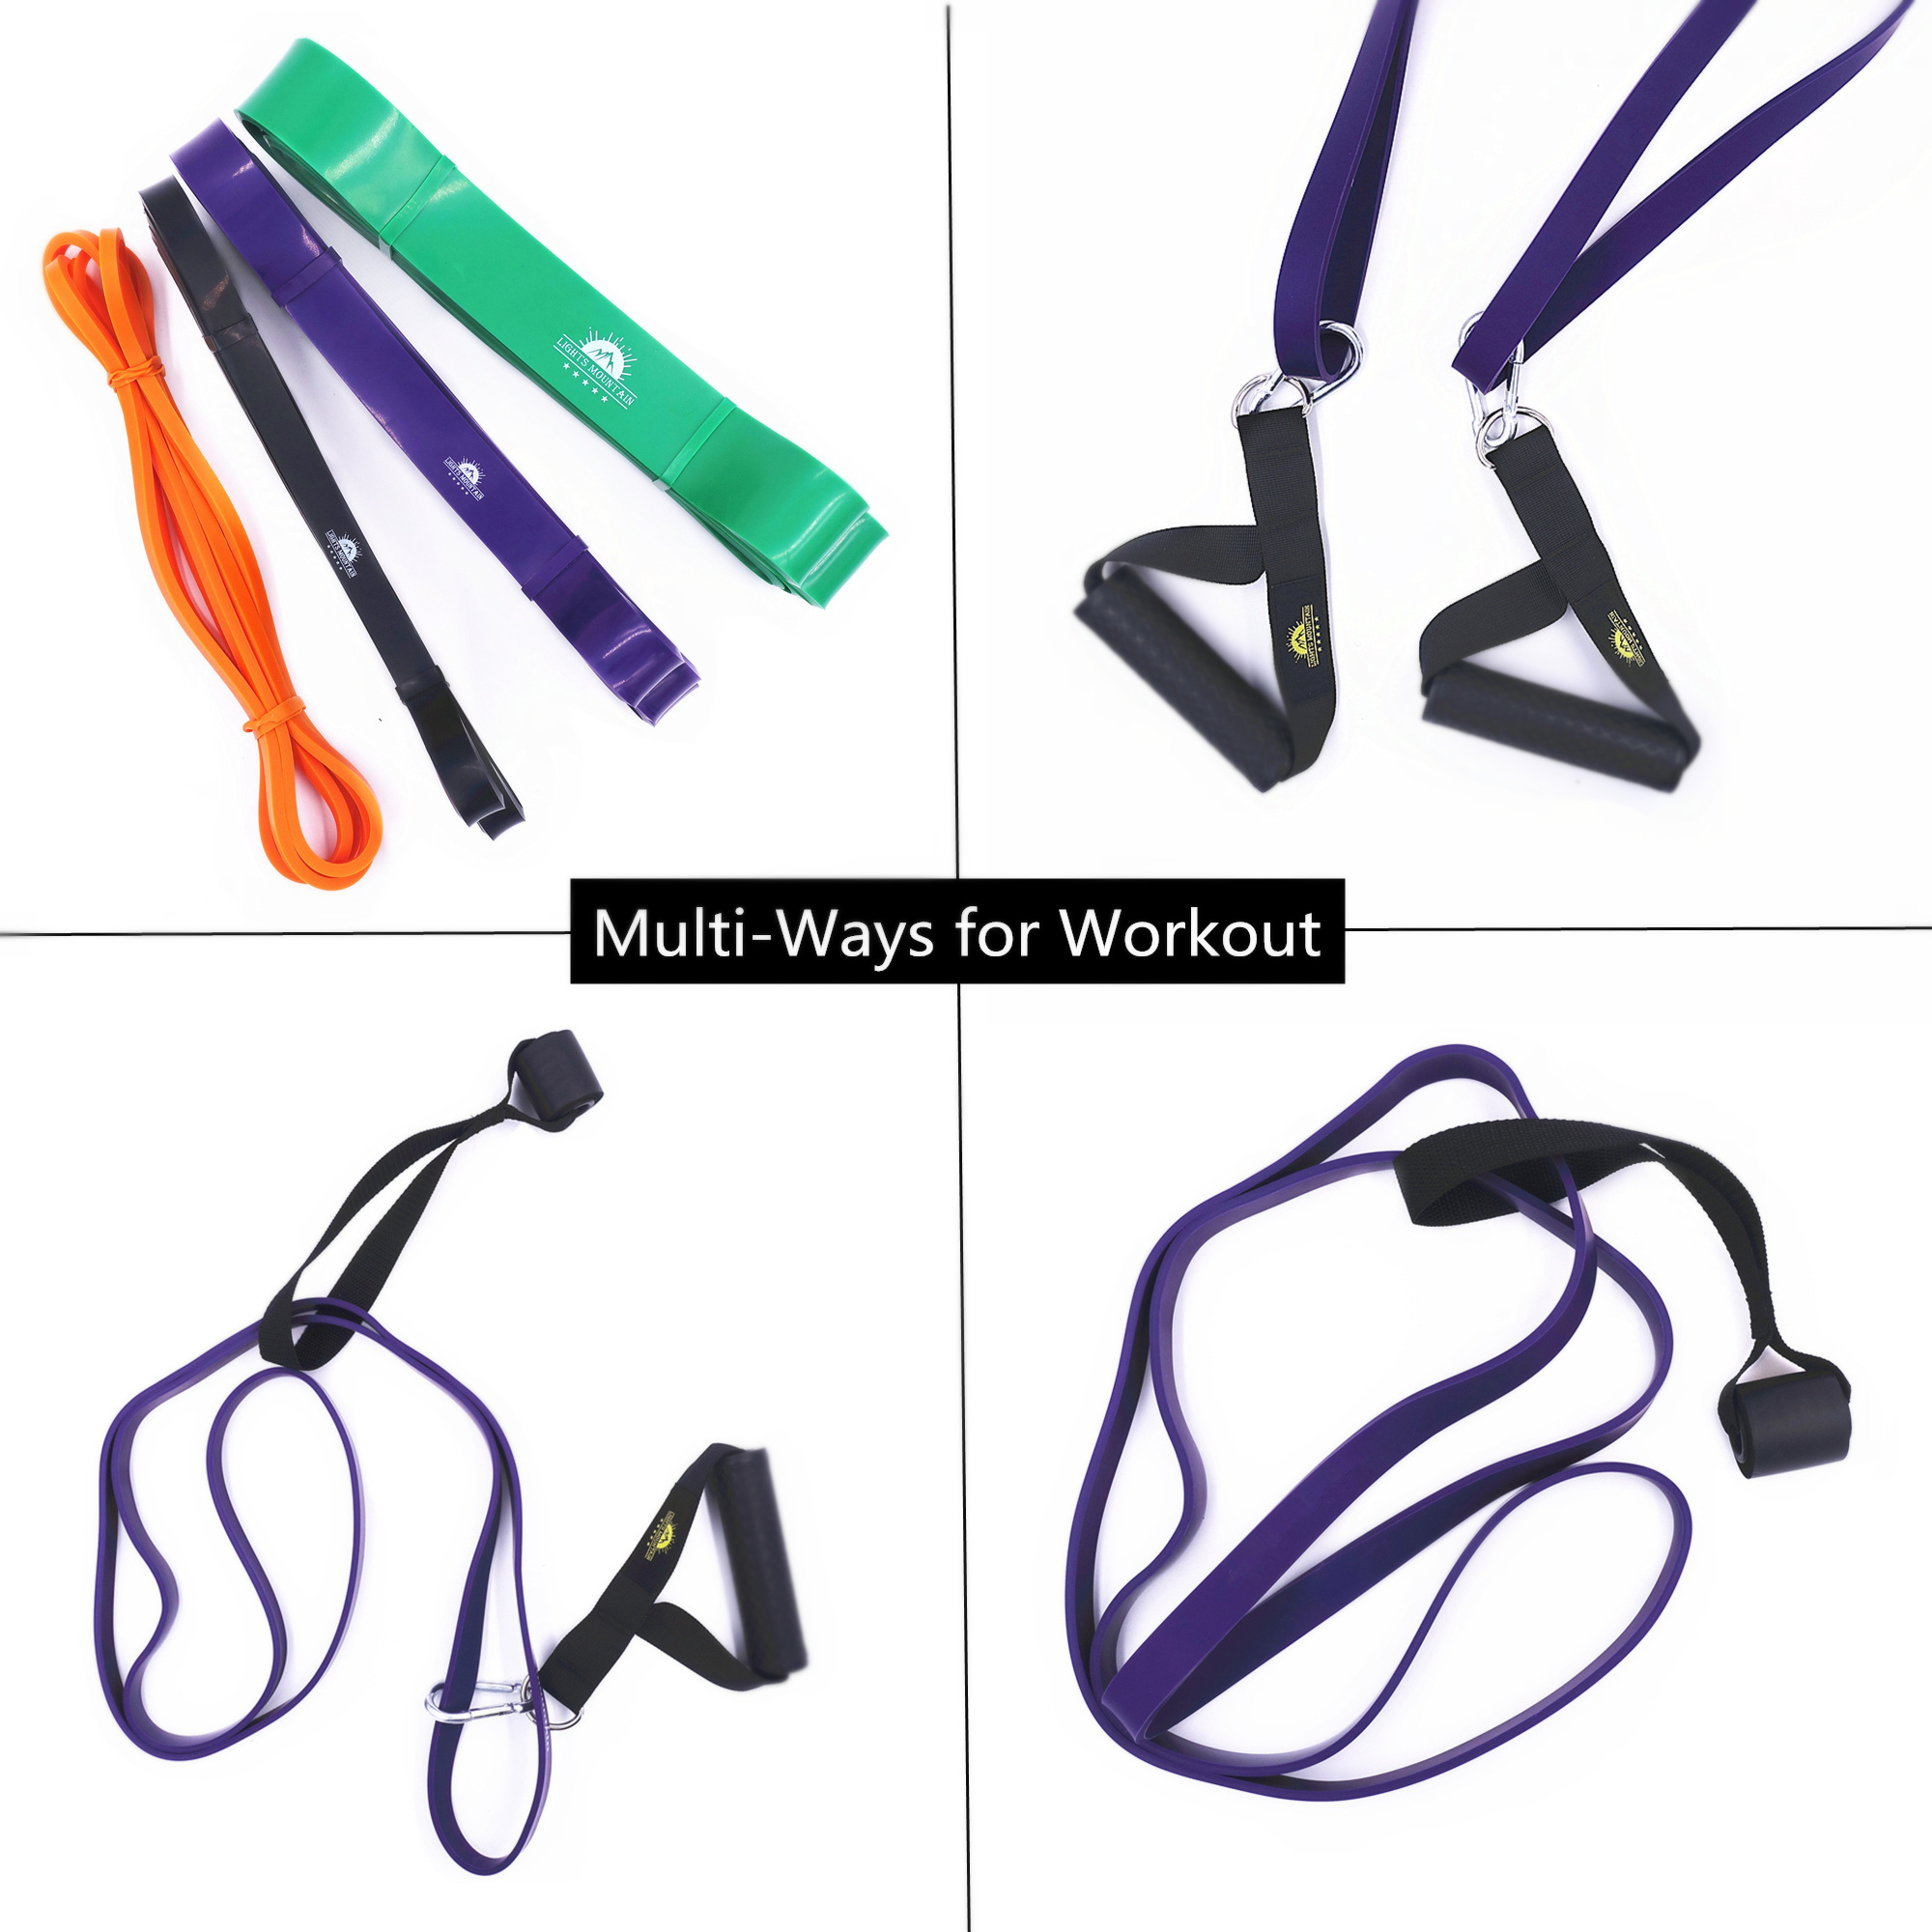 Pull Up Assist Resistance Bands Set Heavy Duty Power lifting Stretch Expander Bands Fitness Gym Workout Training Equipment